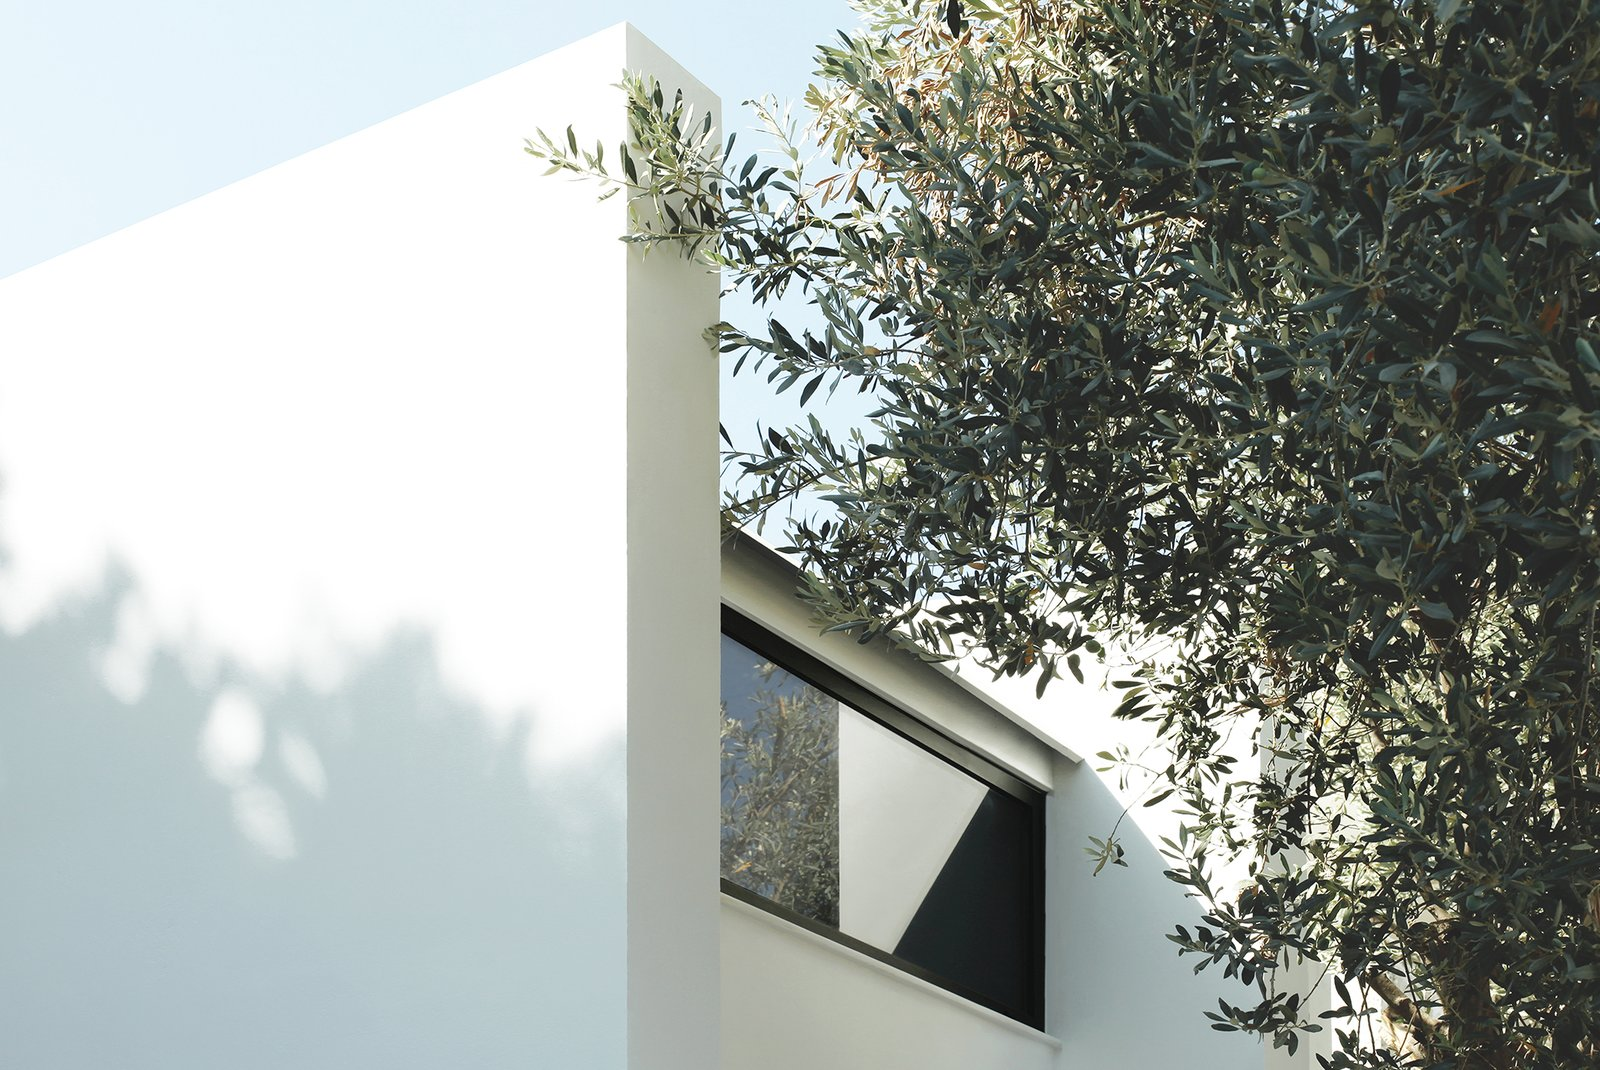 Modular concrete panels that make up the walls, while clerestory windows help keep the interiors bright.